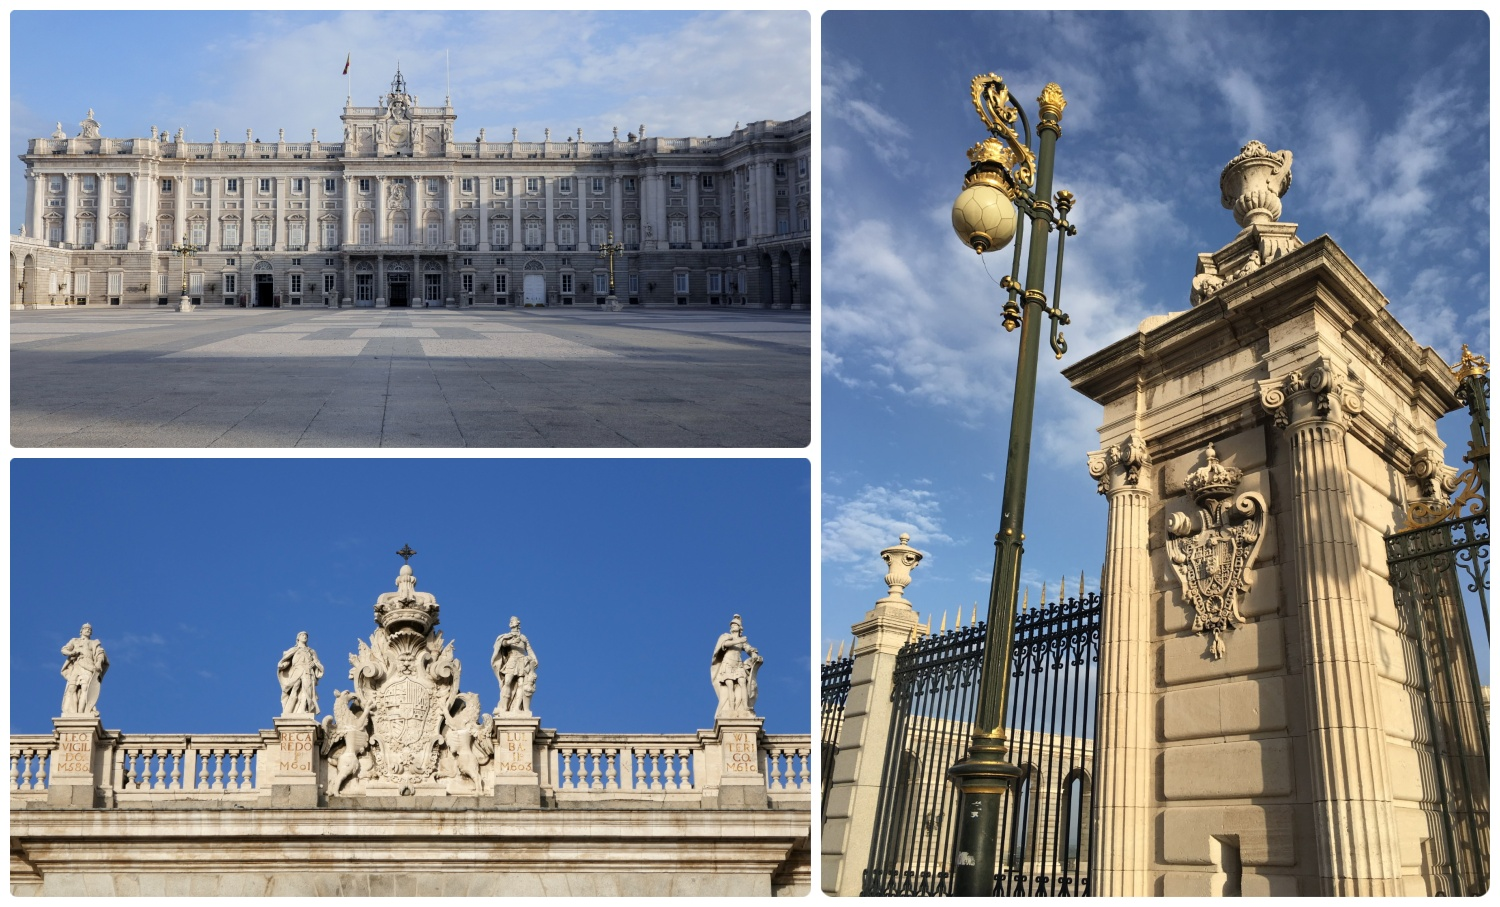 The Royal Palace of Madrid (Palacio Real de Madrid) in Madrid, Spain